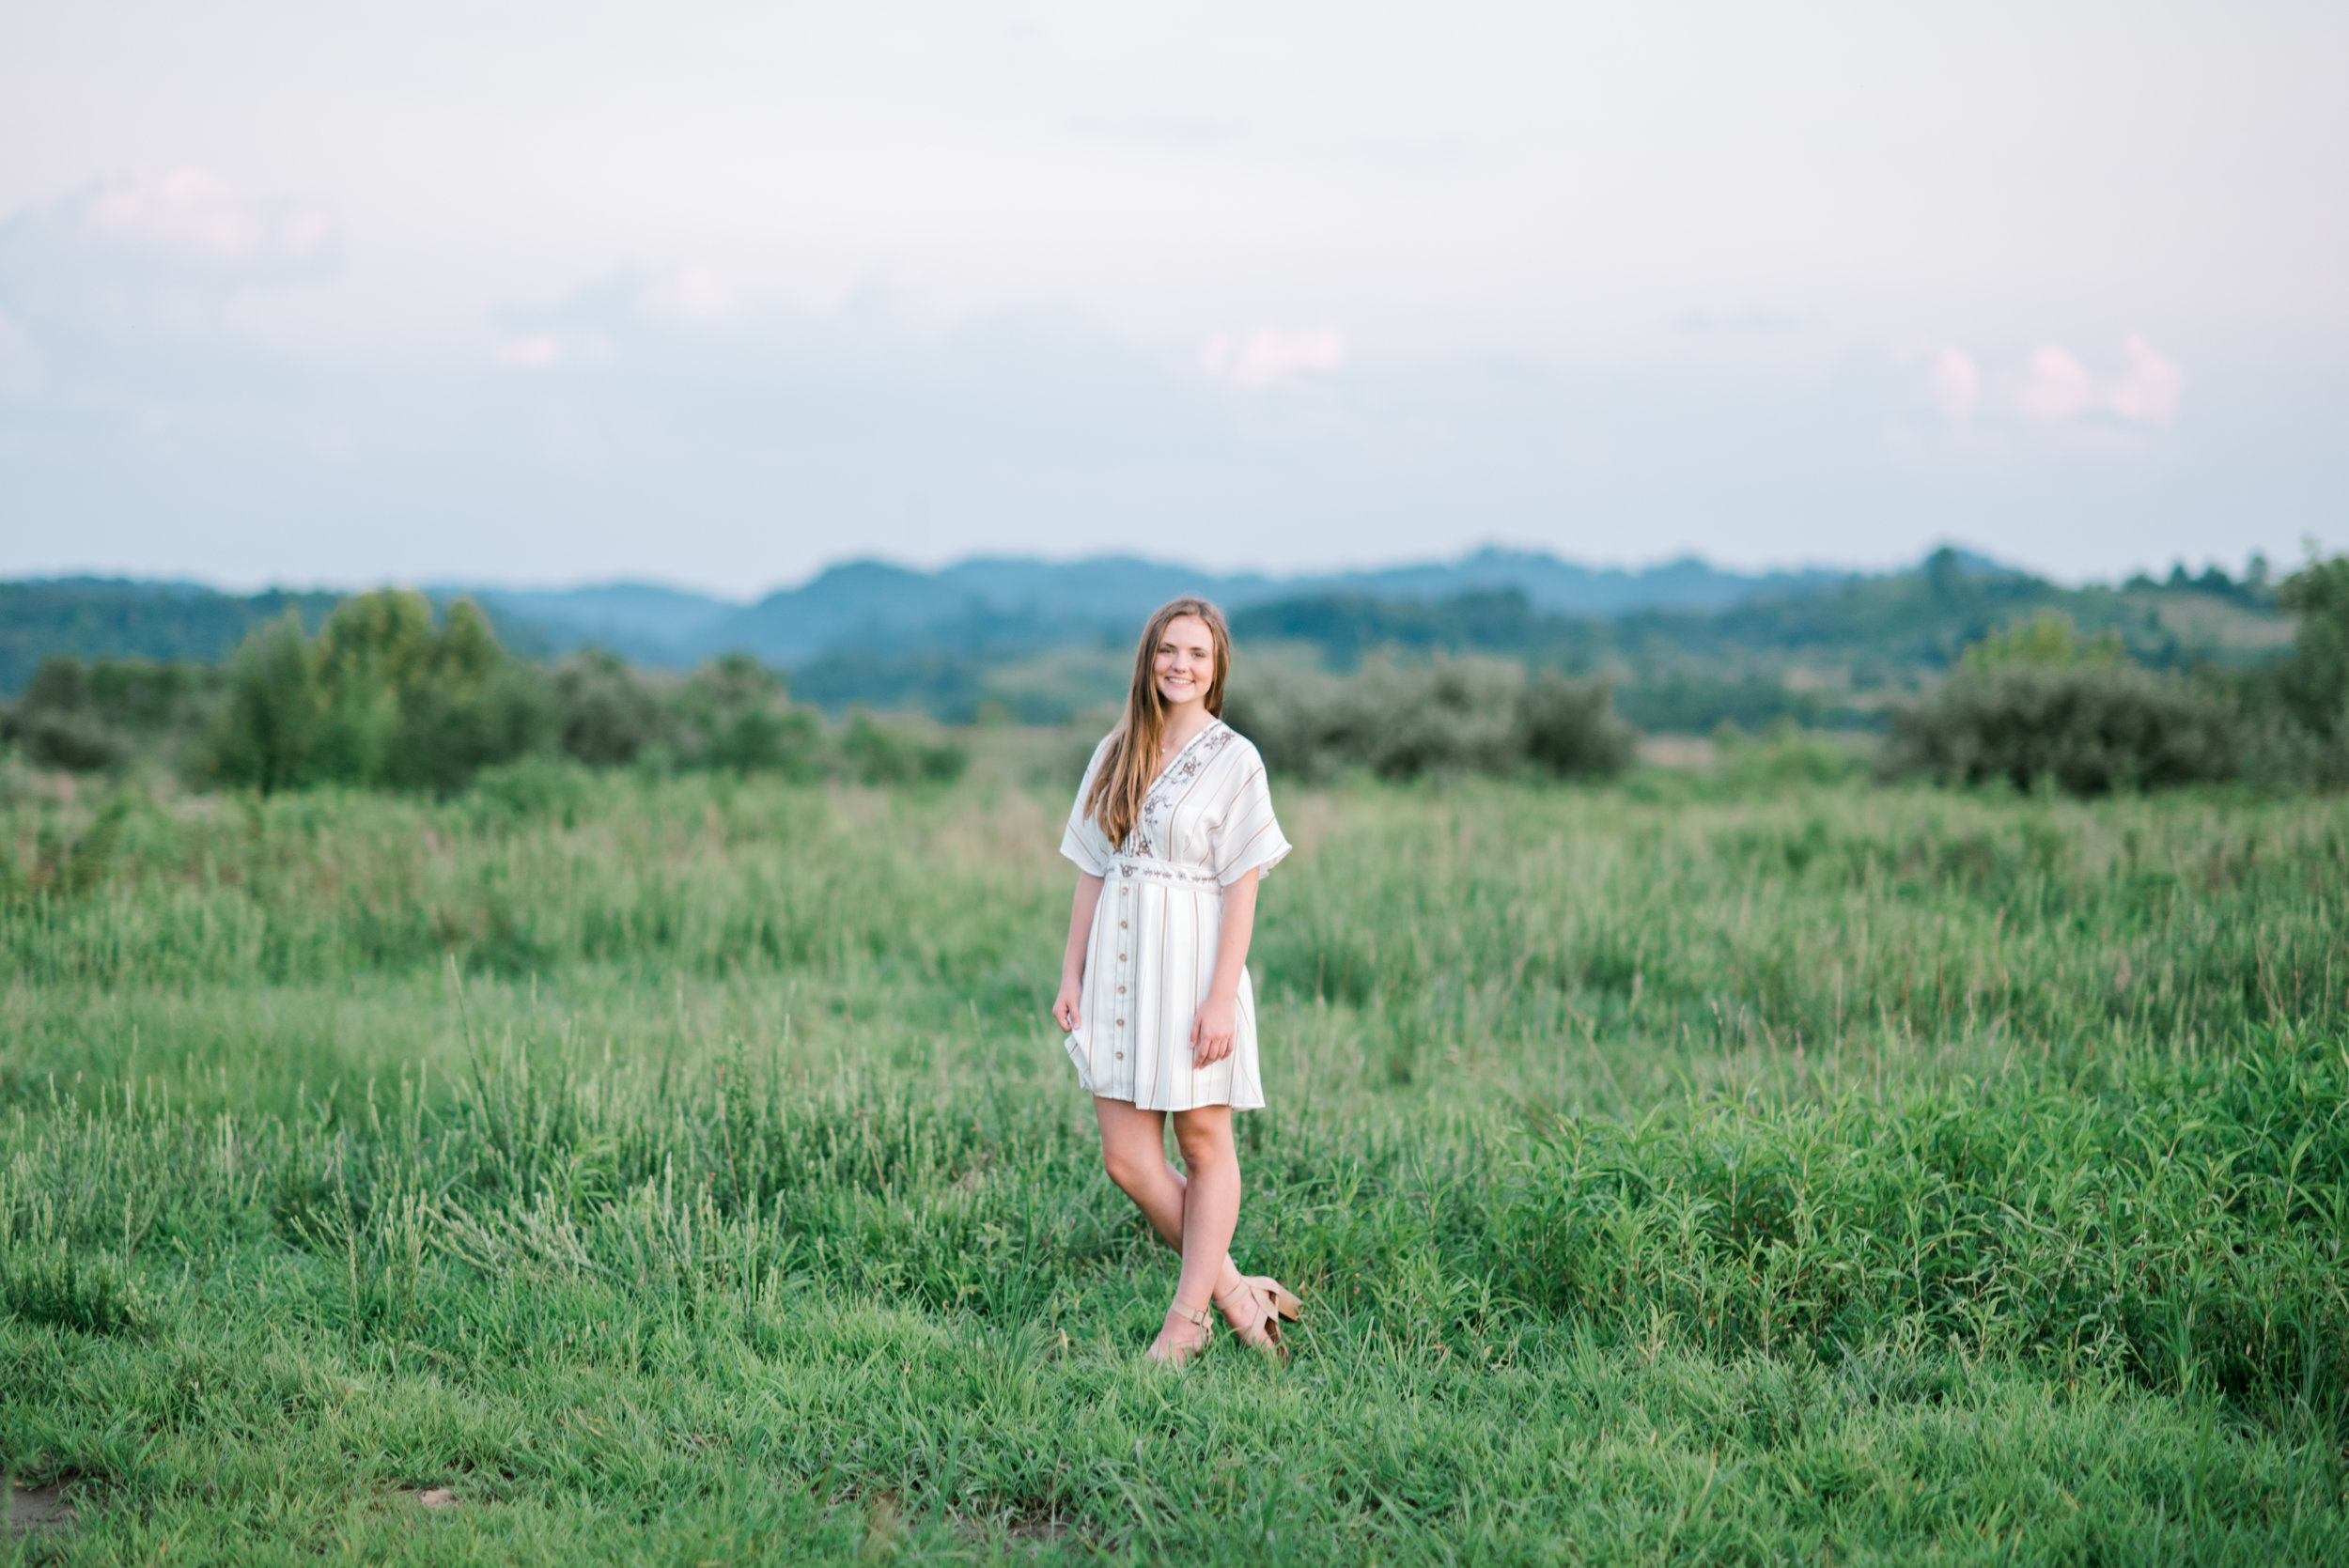 lcc-senior-photographer-kentucky